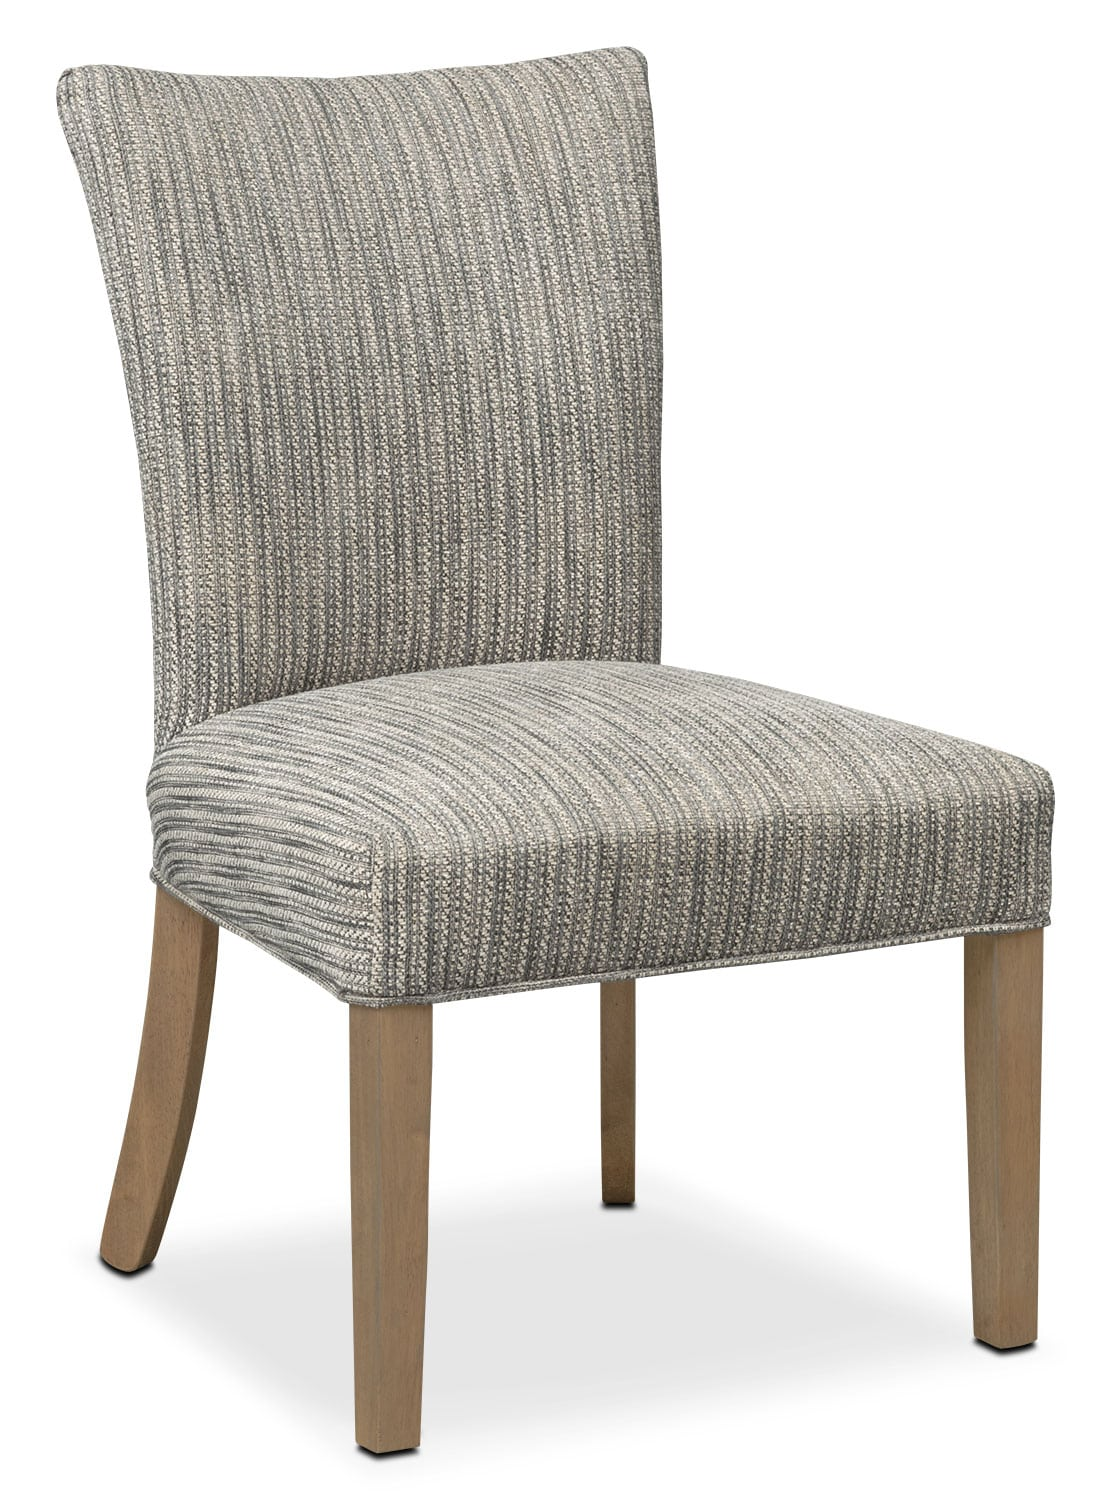 Marlo Side Chair - Gray